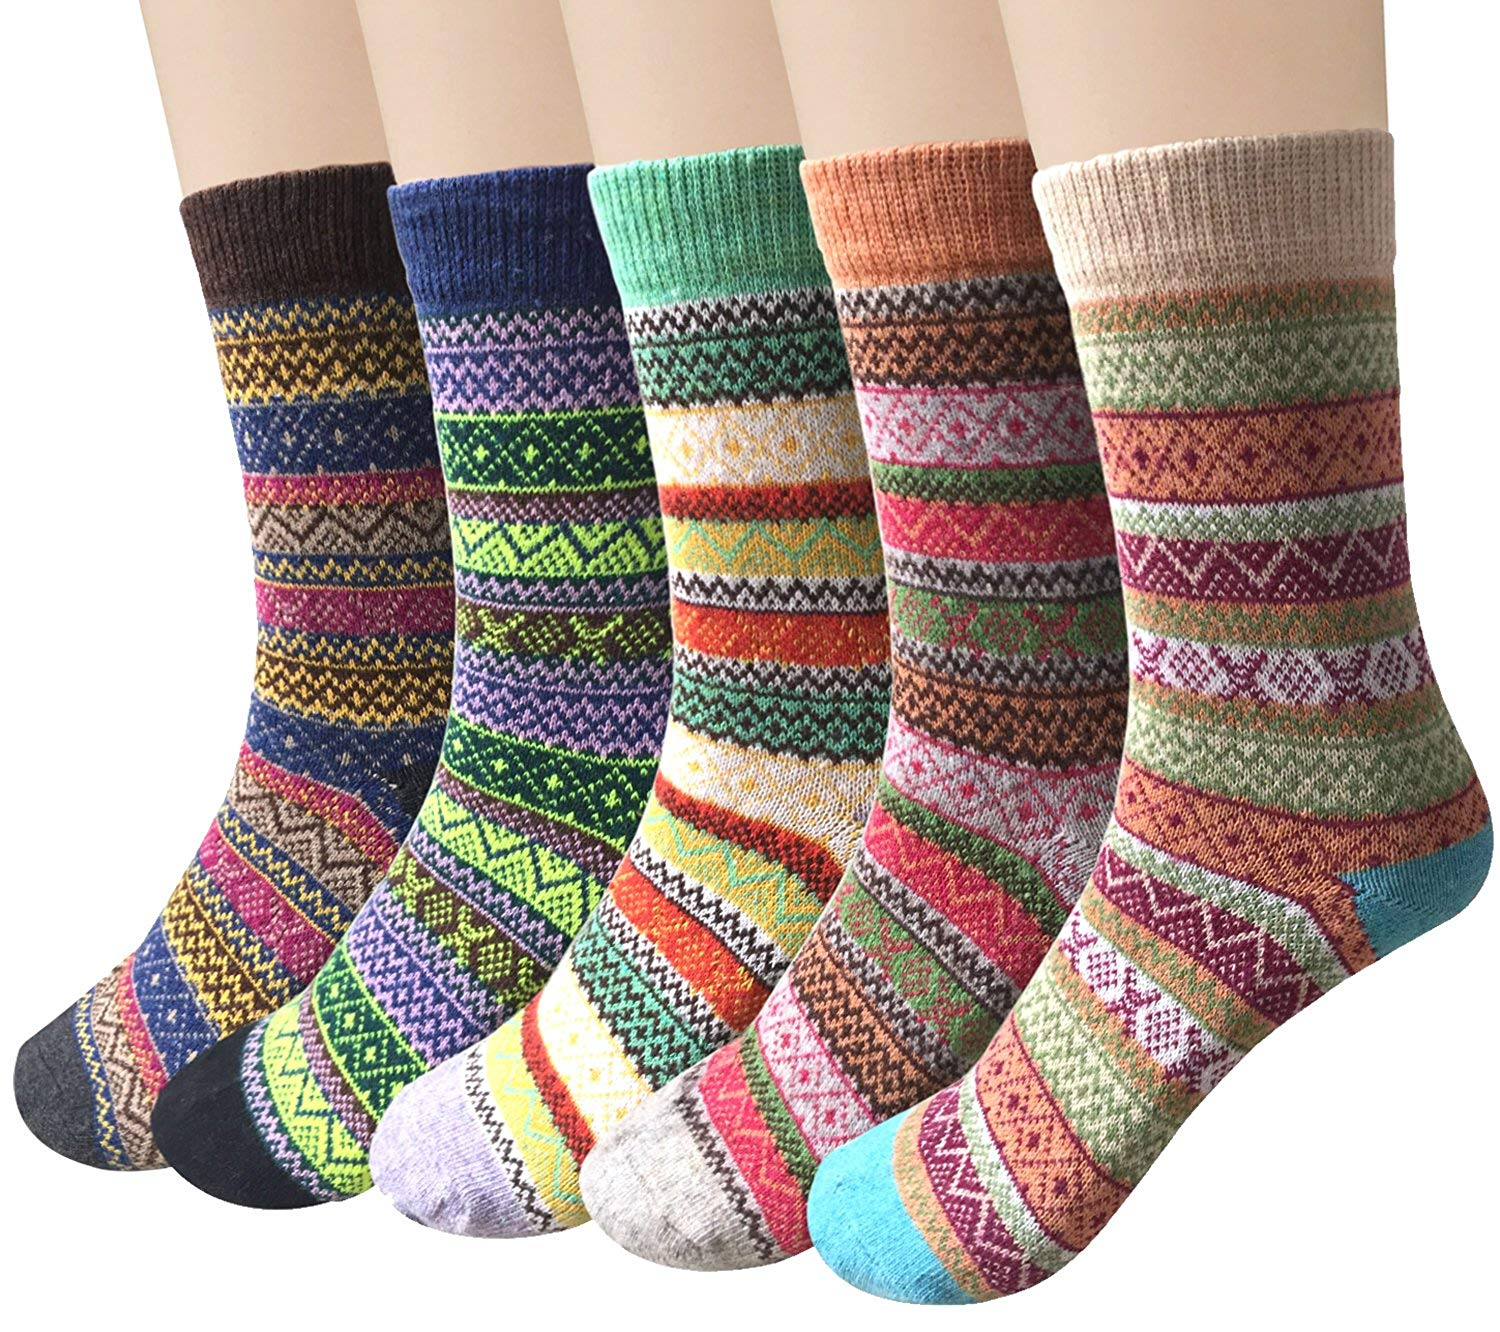 5 Paar Winter Wolle Damen Socken, Bunte Gemusterte Stricksocken